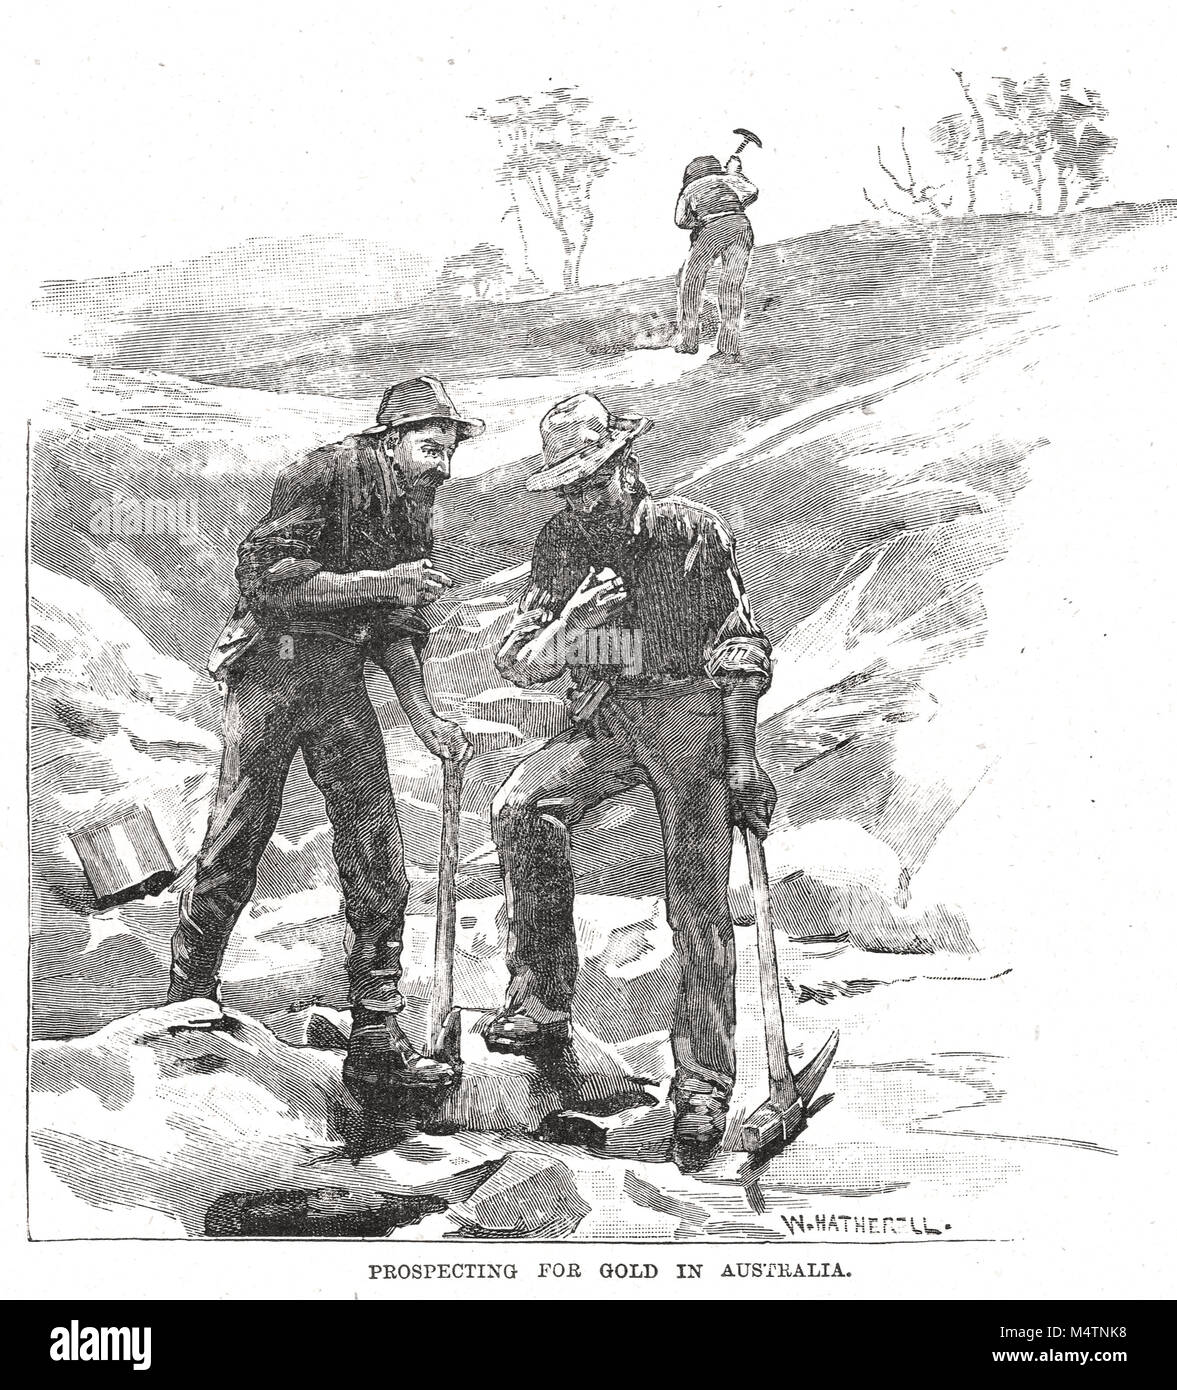 Prospecting for Gold, Victorian gold rush, Victoria, Australia, 1851-1860's - Stock Image